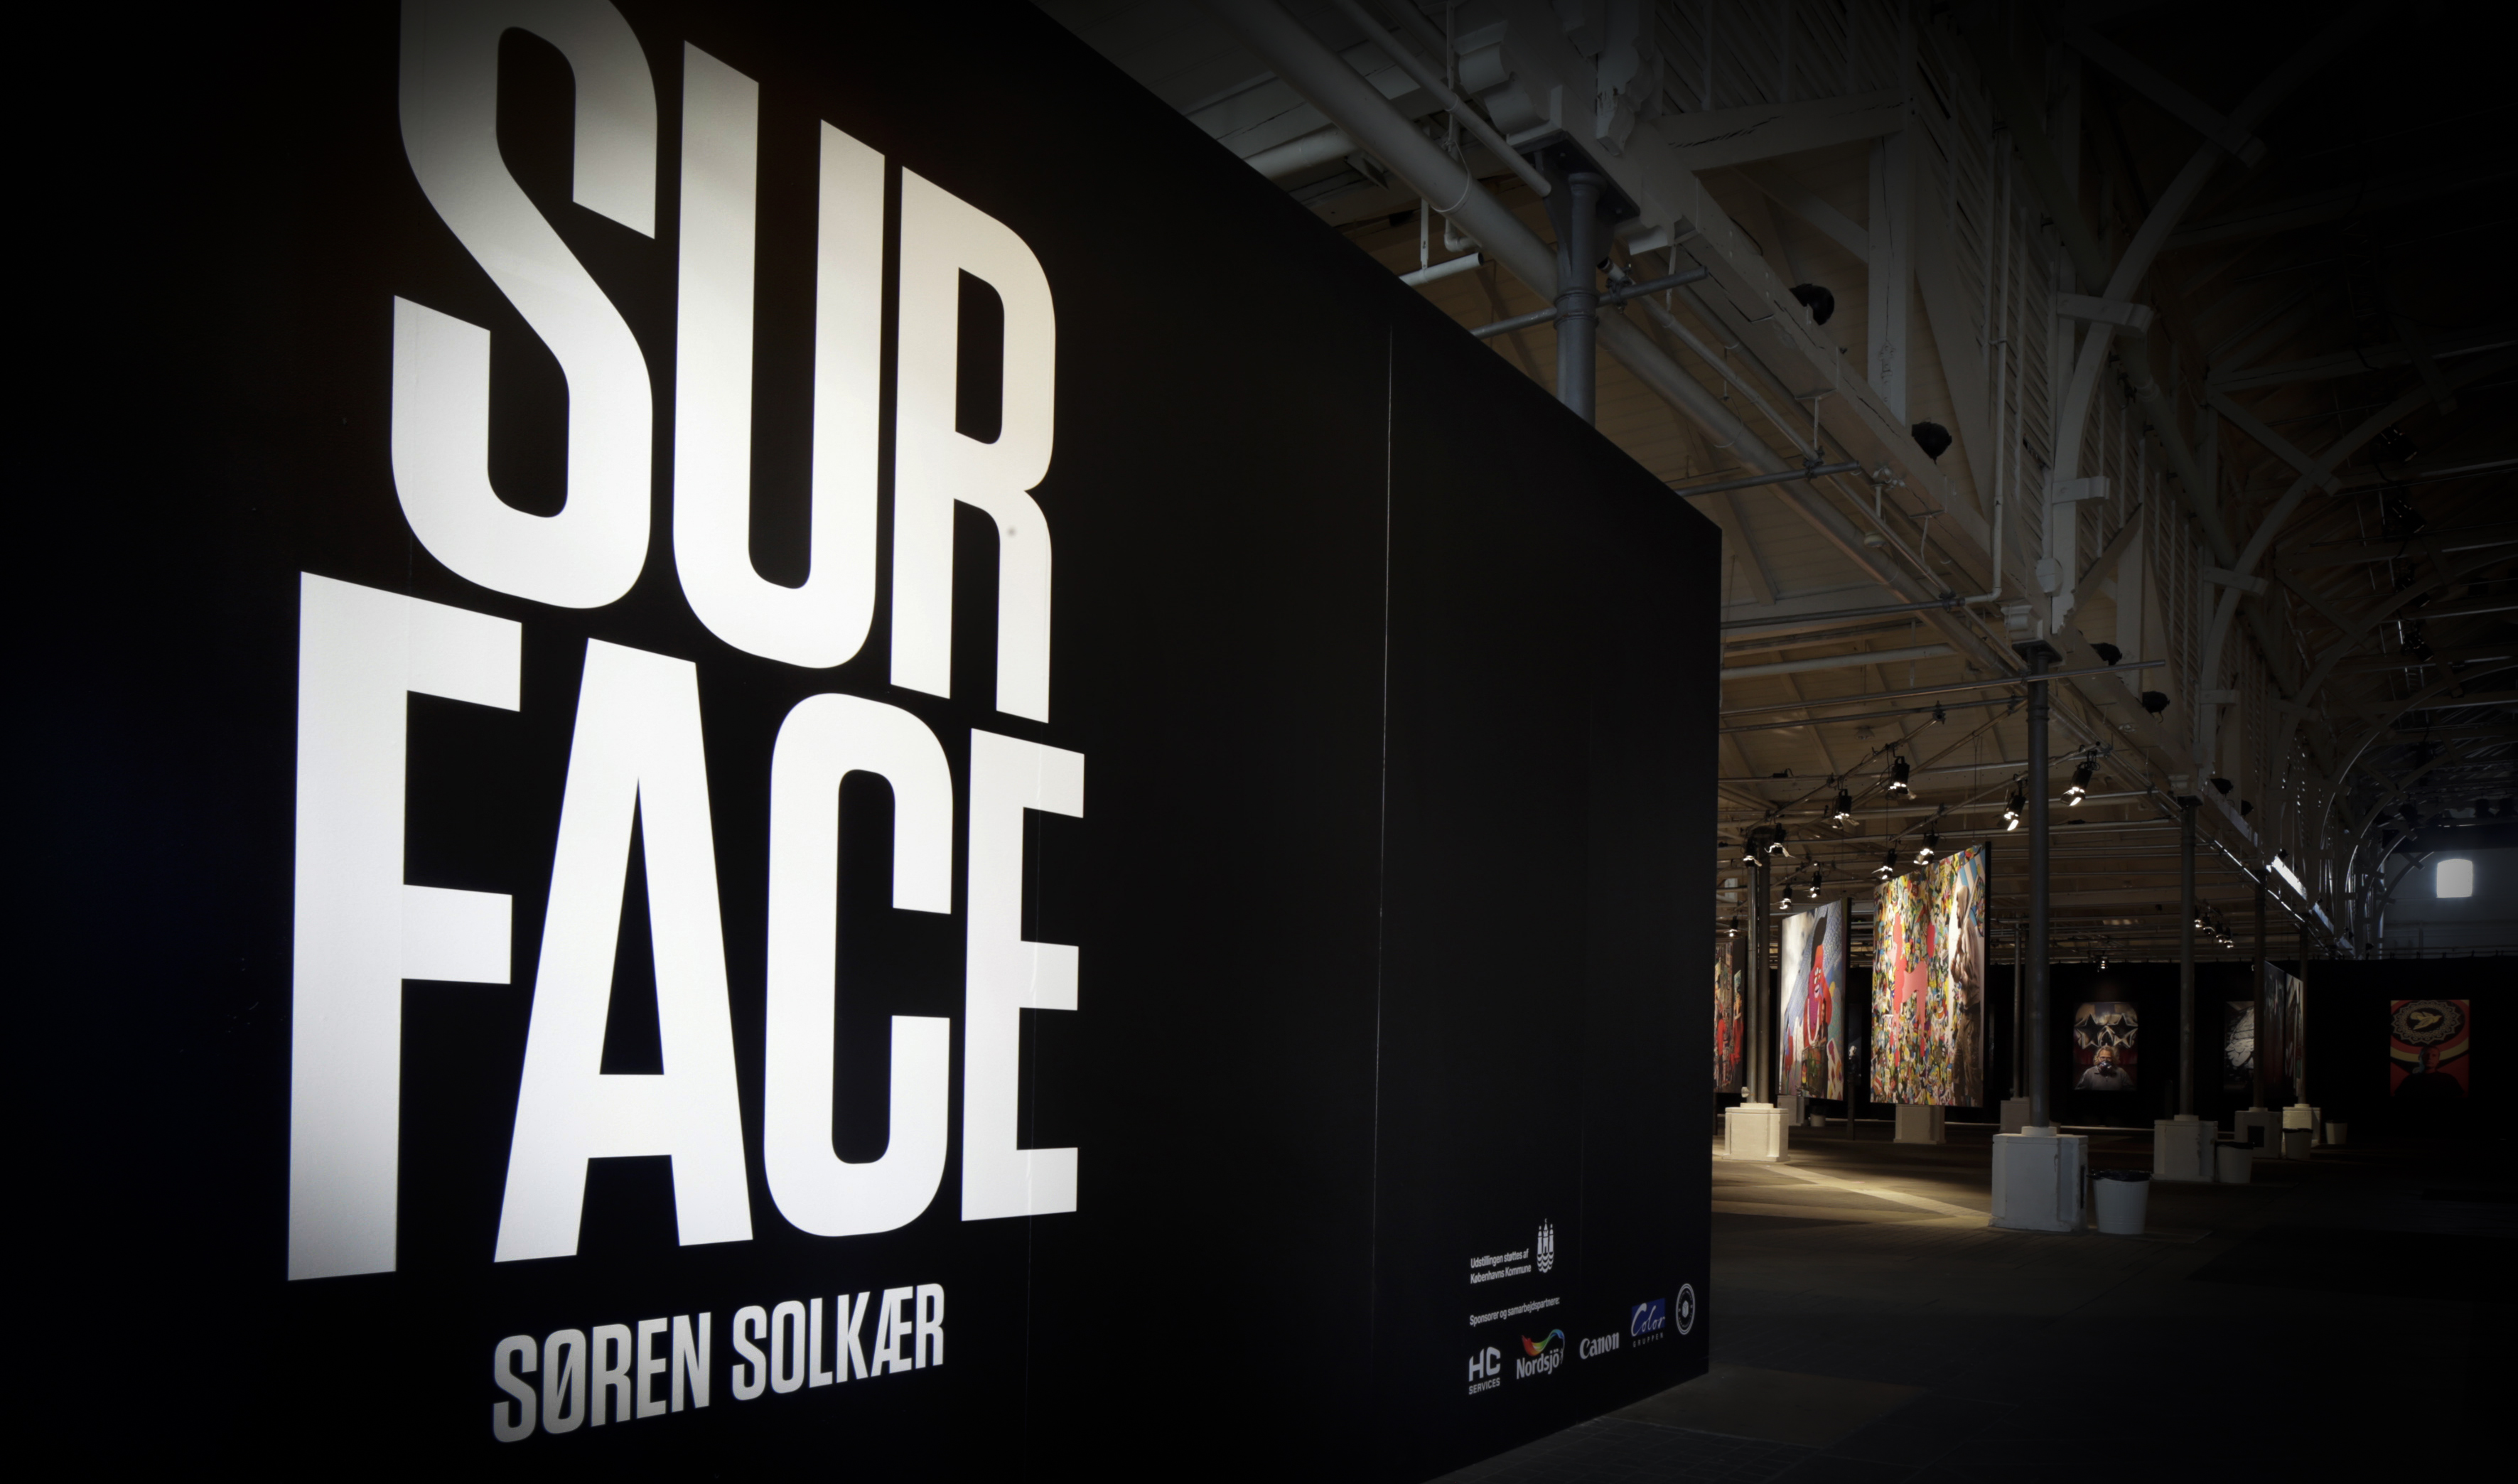 A work by Does - Surface exhibition soren solkaer